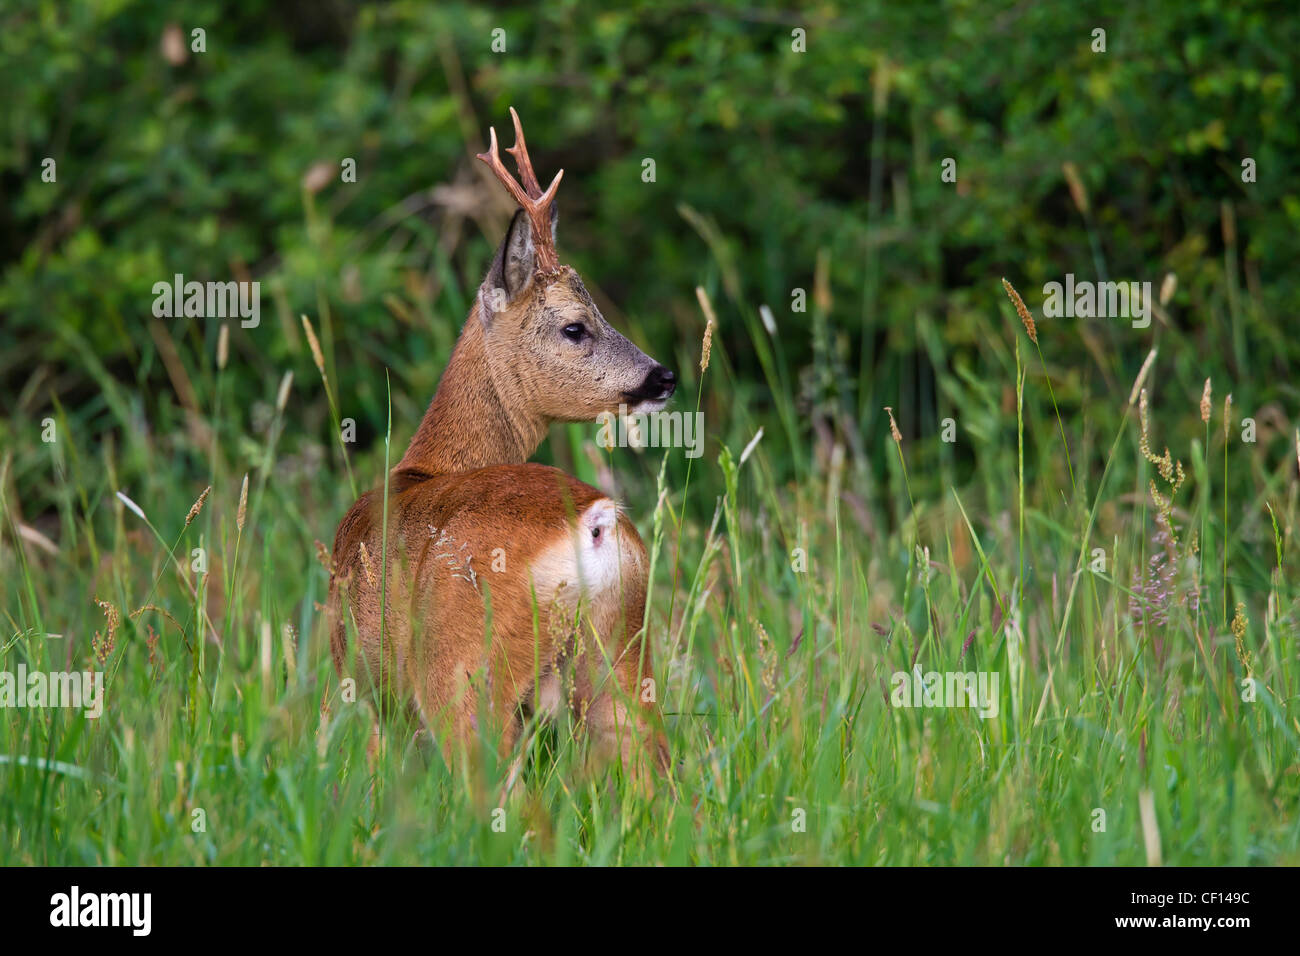 Roe deer (Capreolus capreolus) roebuck at forest's edge, Germany - Stock Image